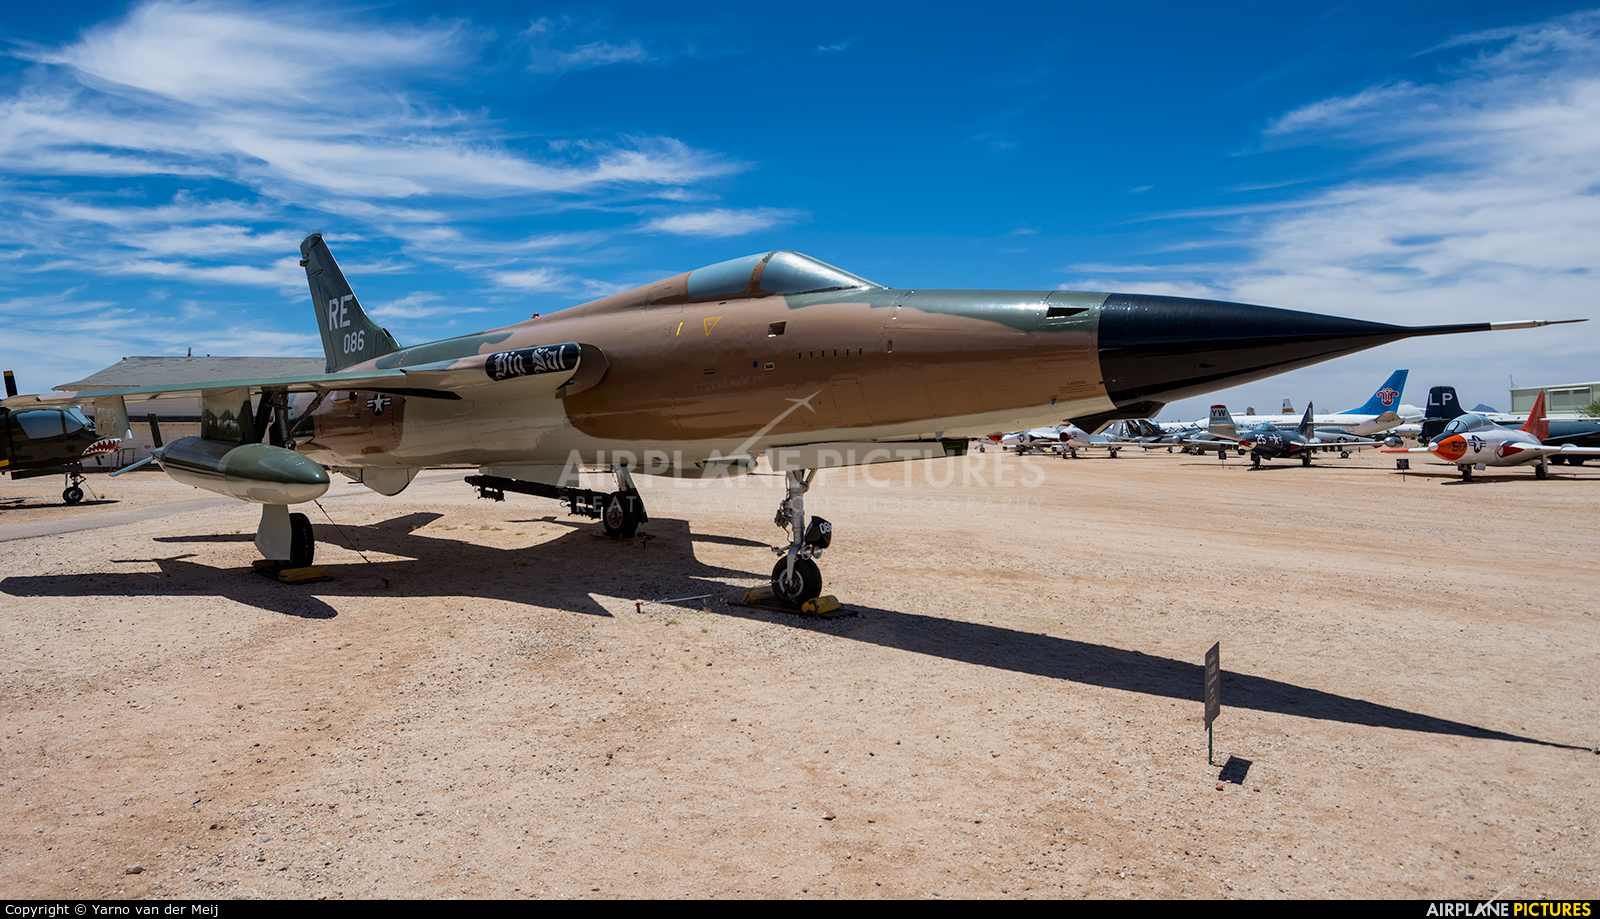 RE086 aircraft at Tucson - Pima Air & Space Museum